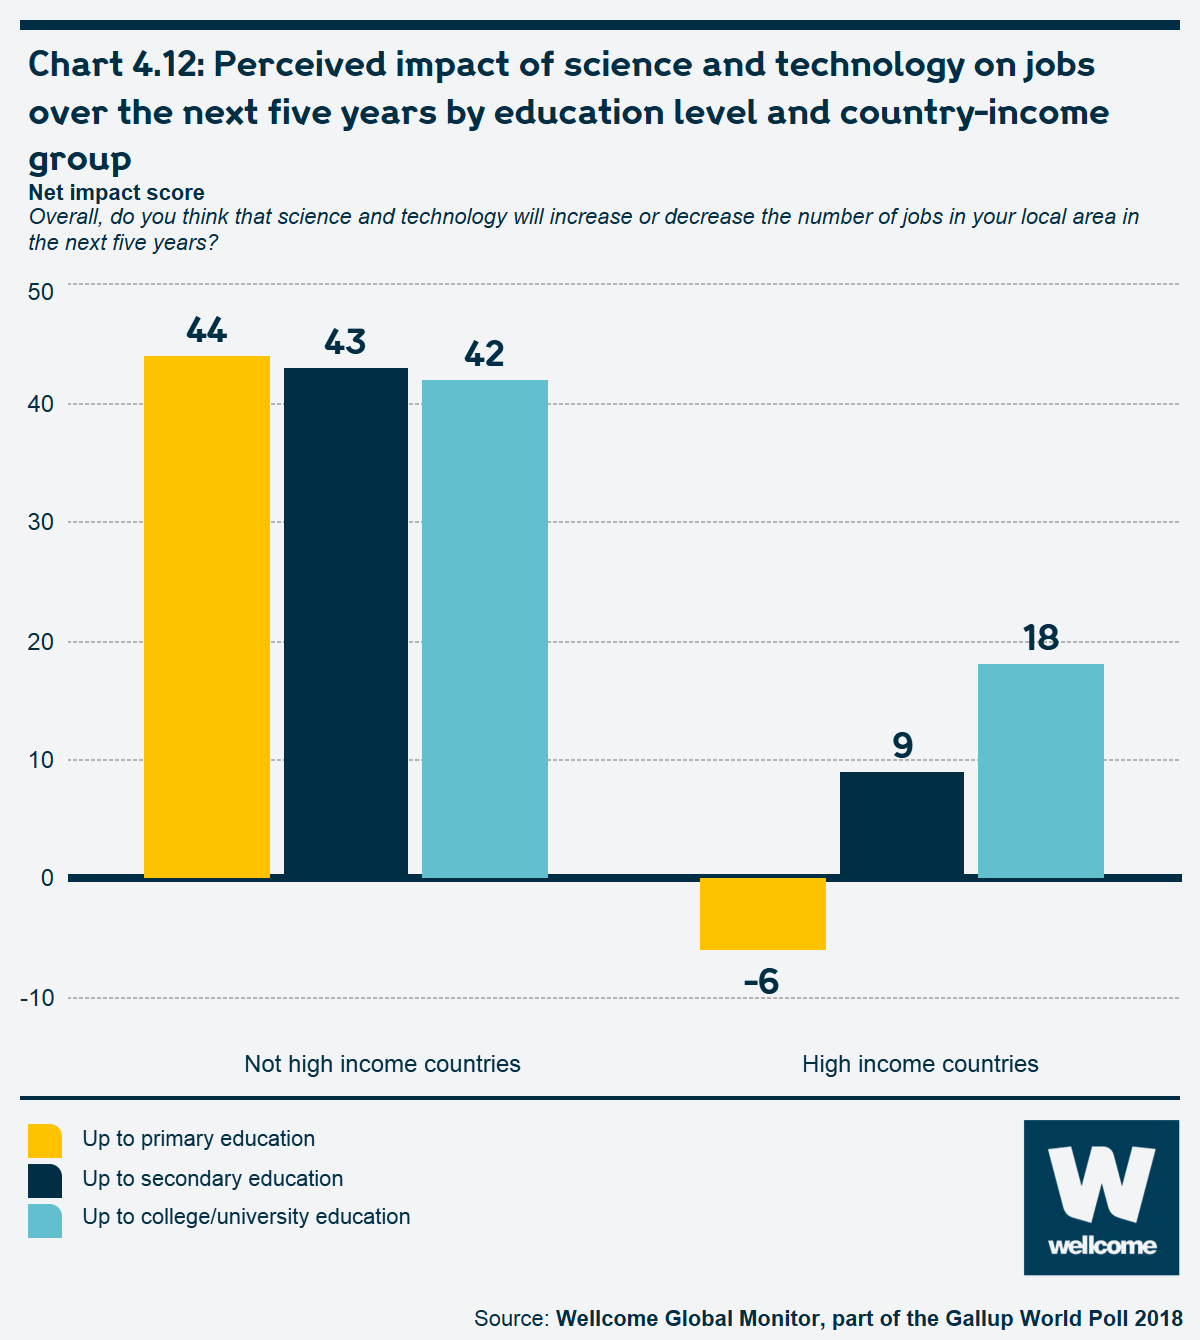 Chart 4.12 Perceived impact of science and technology on jobs over the next five years by education level and country-income group